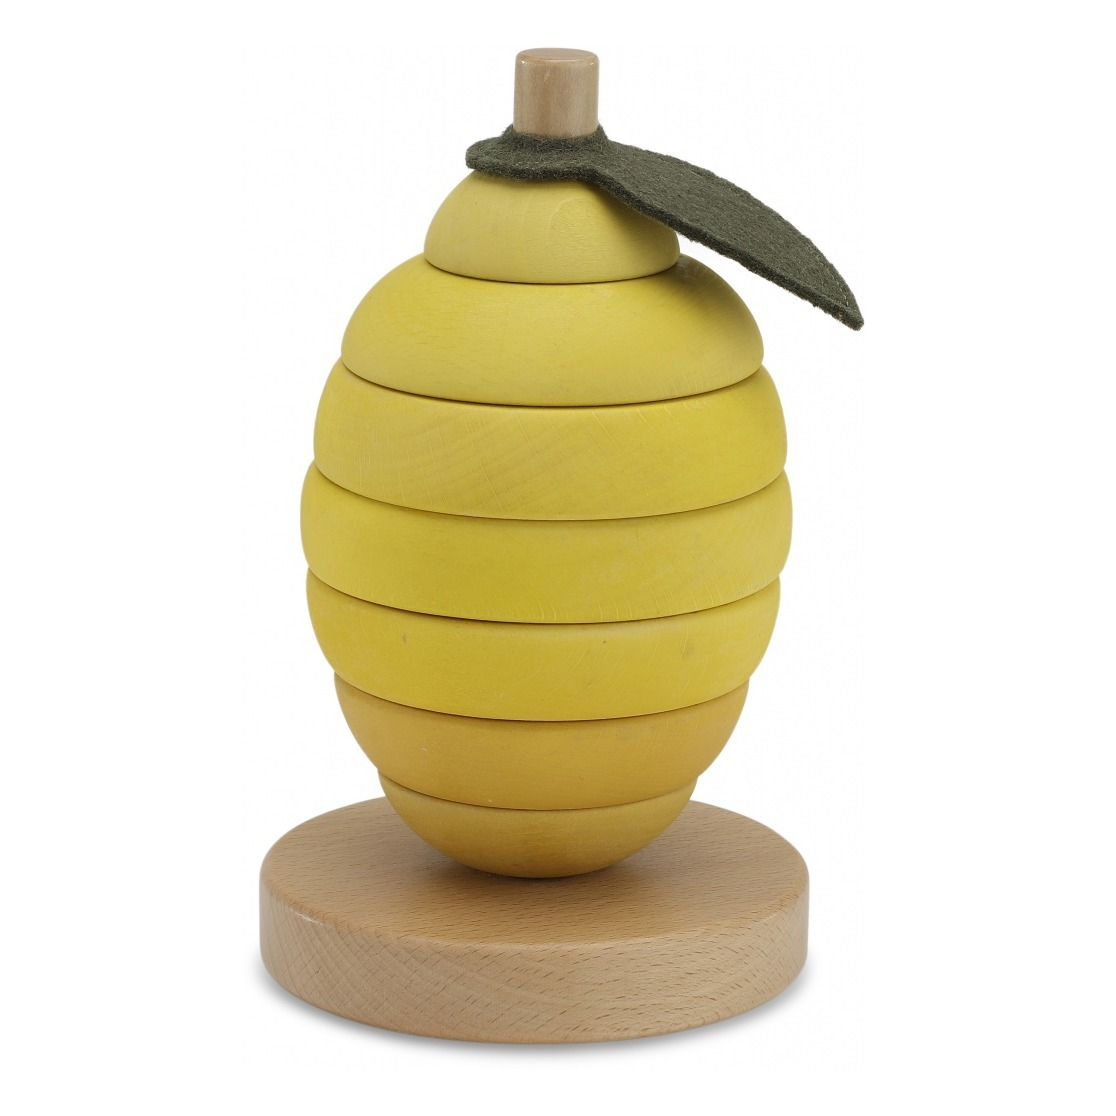 lemon-shaped-wooden-stacking-toy